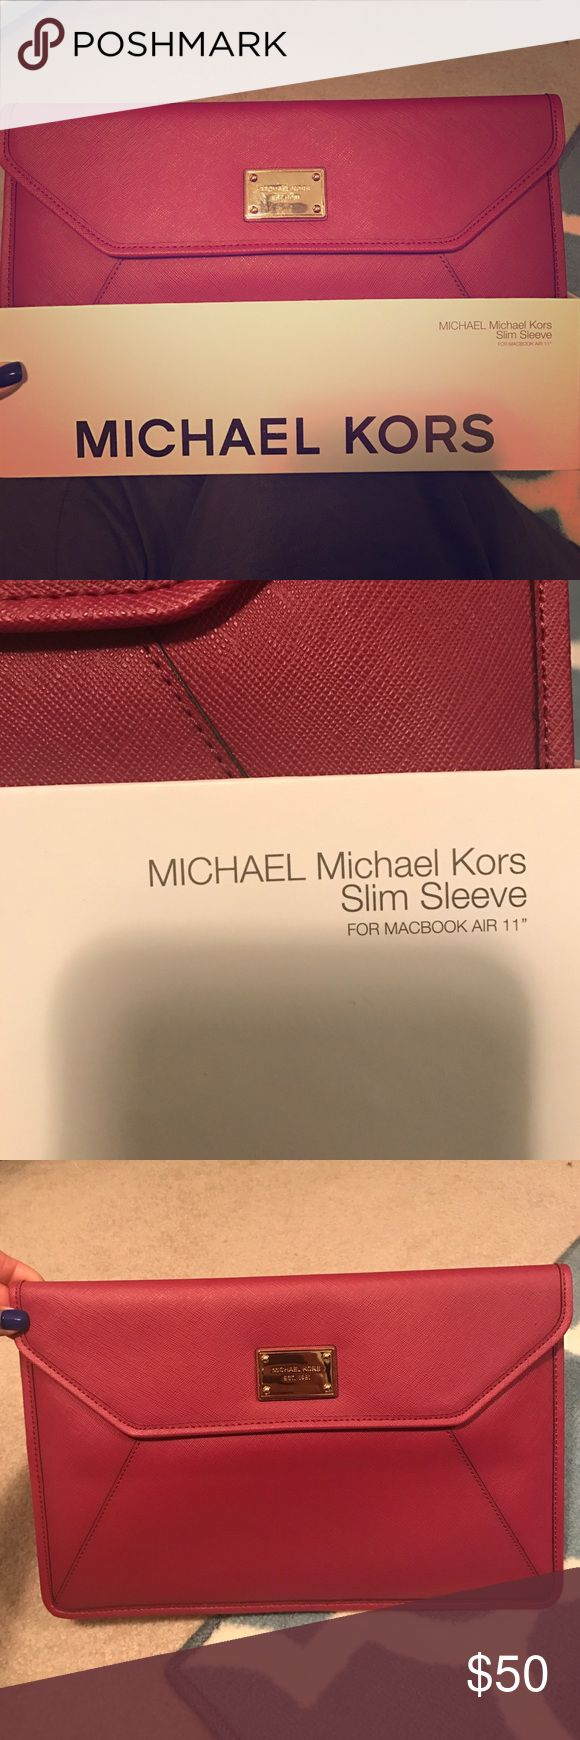 """Michael Kors MacBook Air case Cute way to protect your MacBook Air!  Peony safiano slim sleeve for MacBook 11"""" dimensions are 13"""" x 8.25"""" reg $89 Michael Kors Accessories Laptop Cases"""